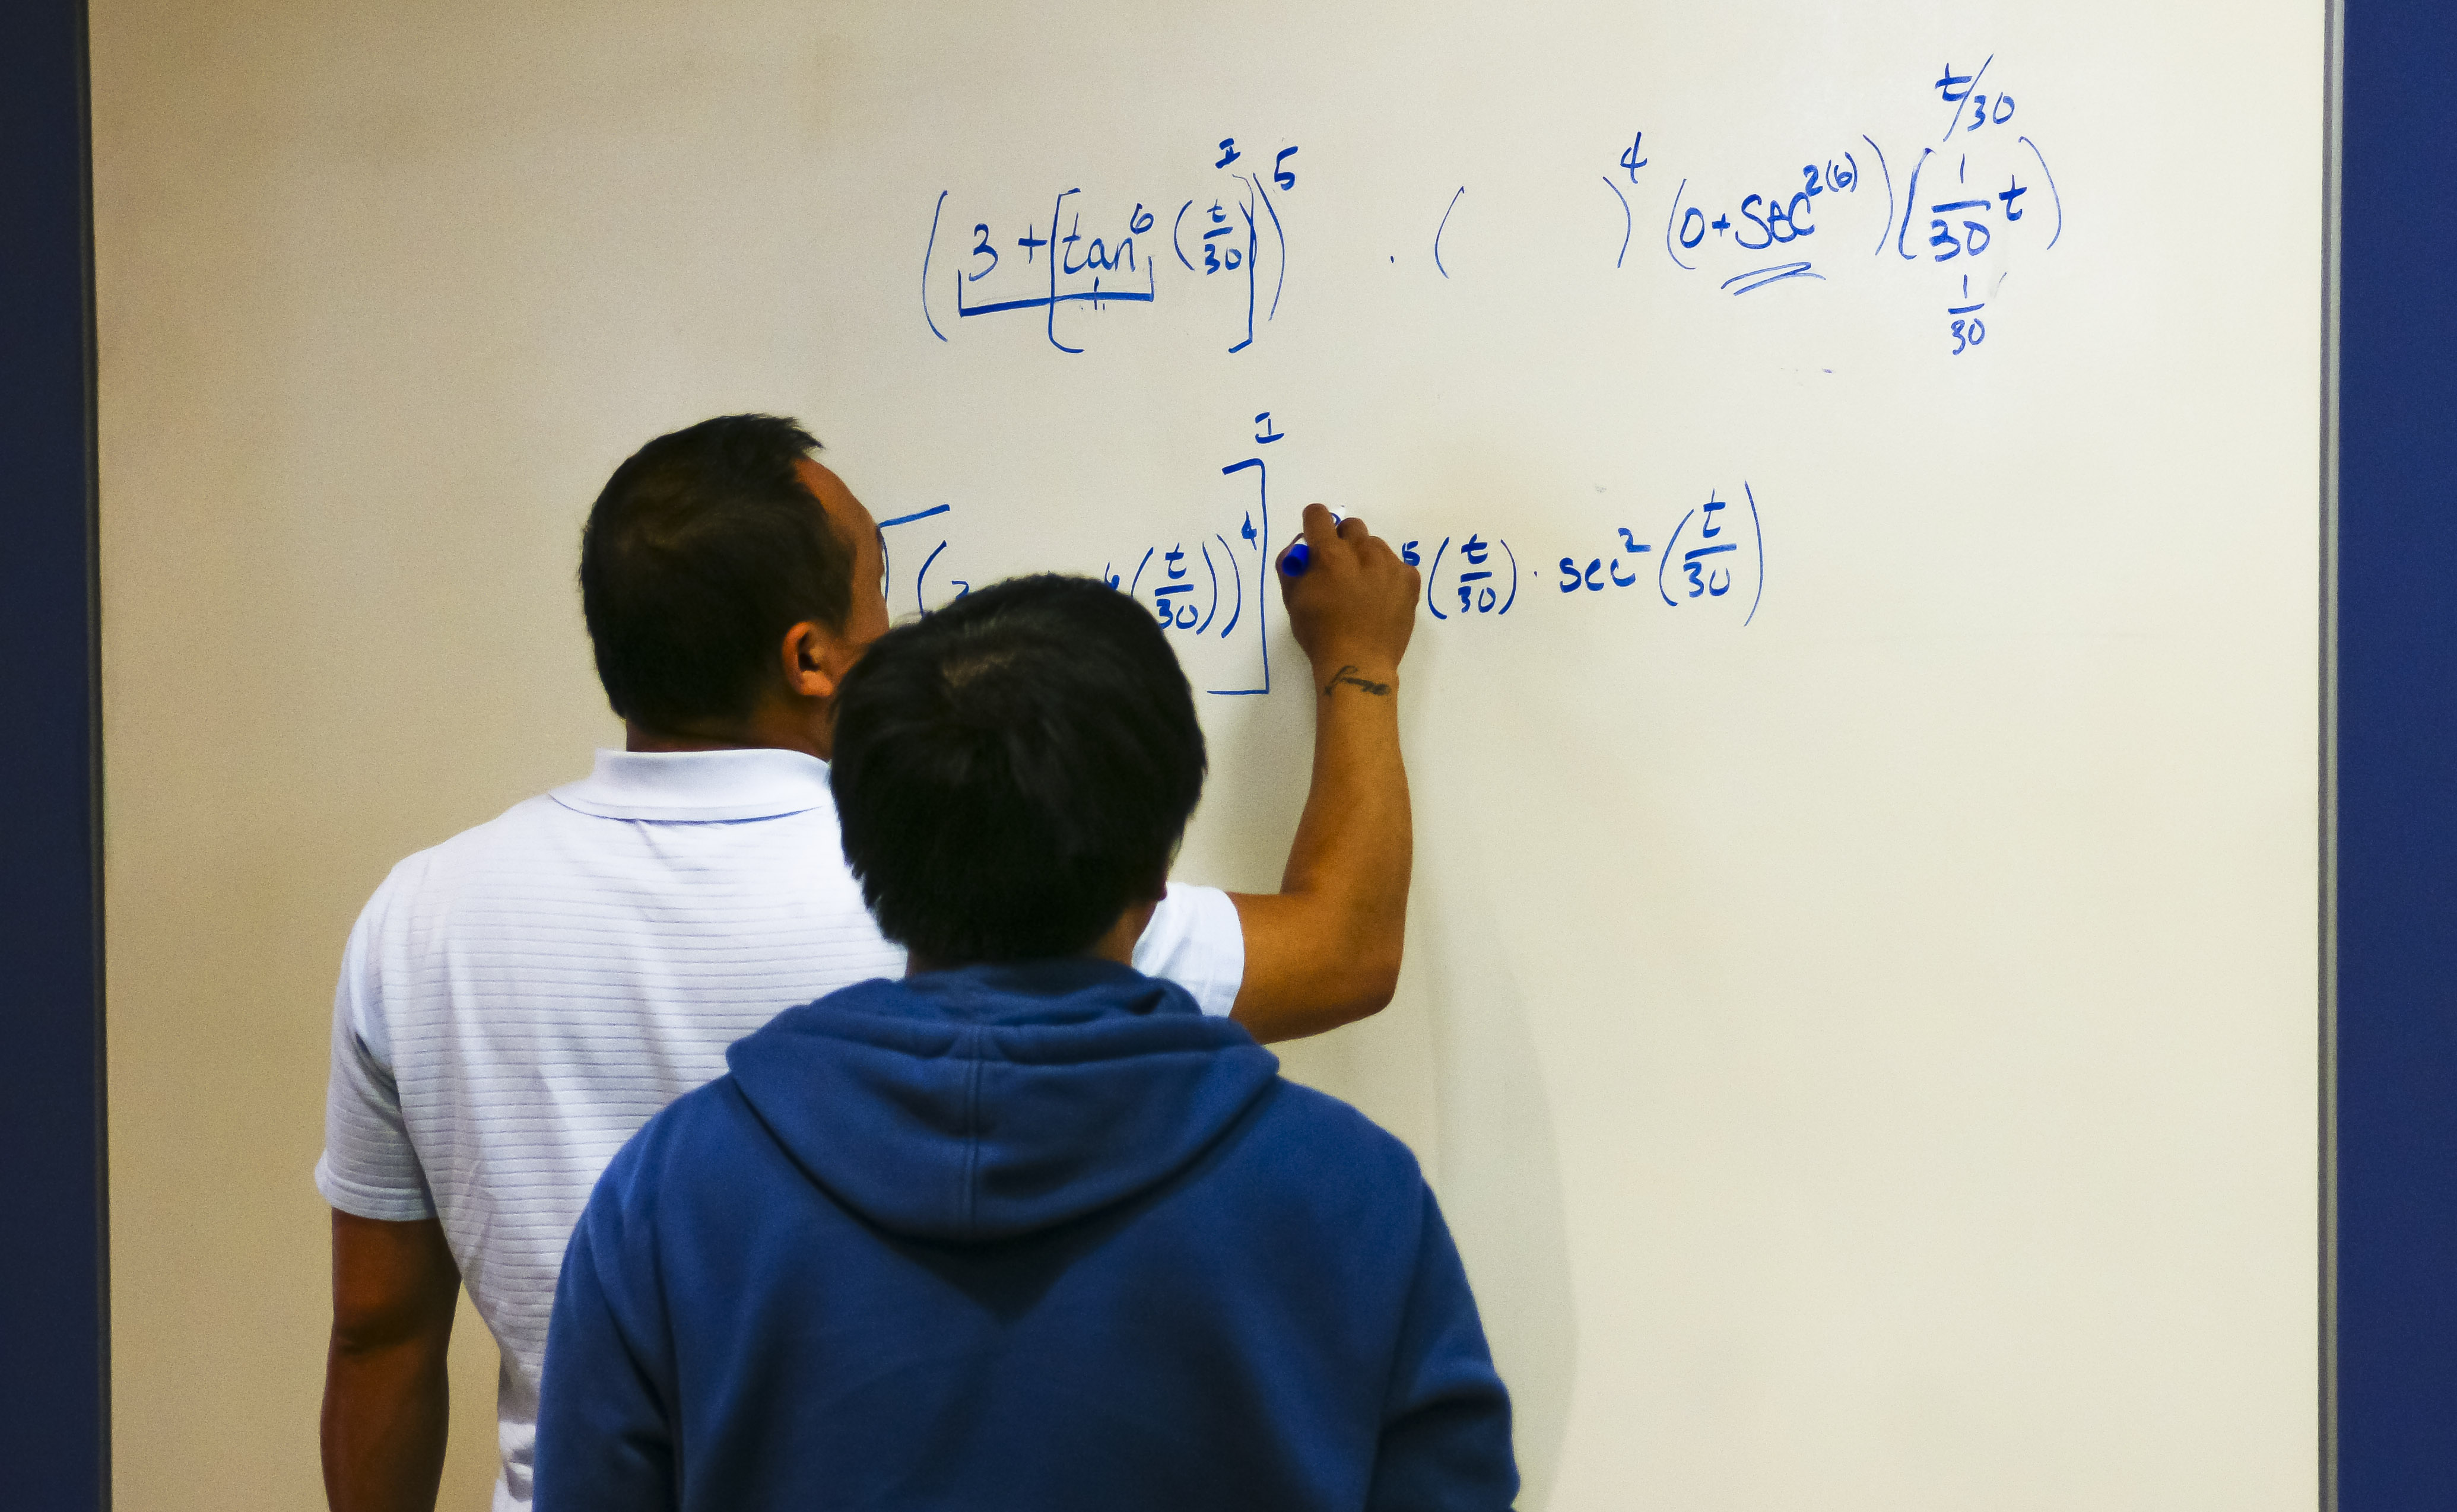 students working in the math area